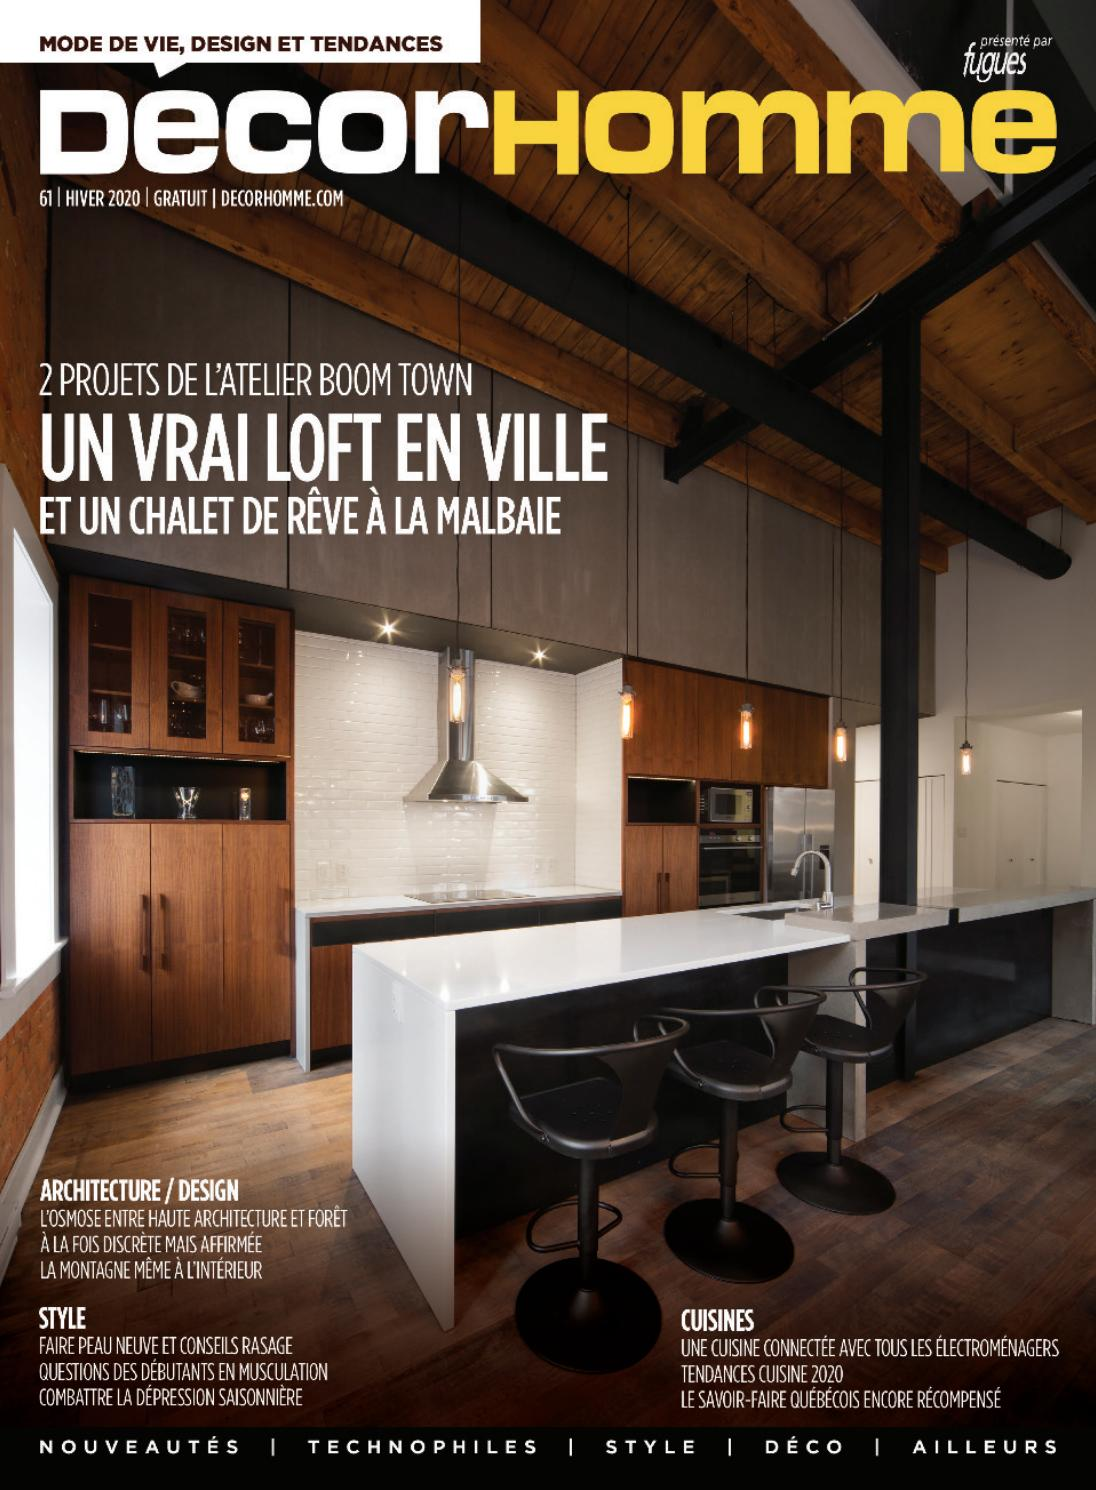 Decorhomme 61 By Fugues Décorhomme Guide Arc En Ciel Et Zip Le Groupe Hom Issuu